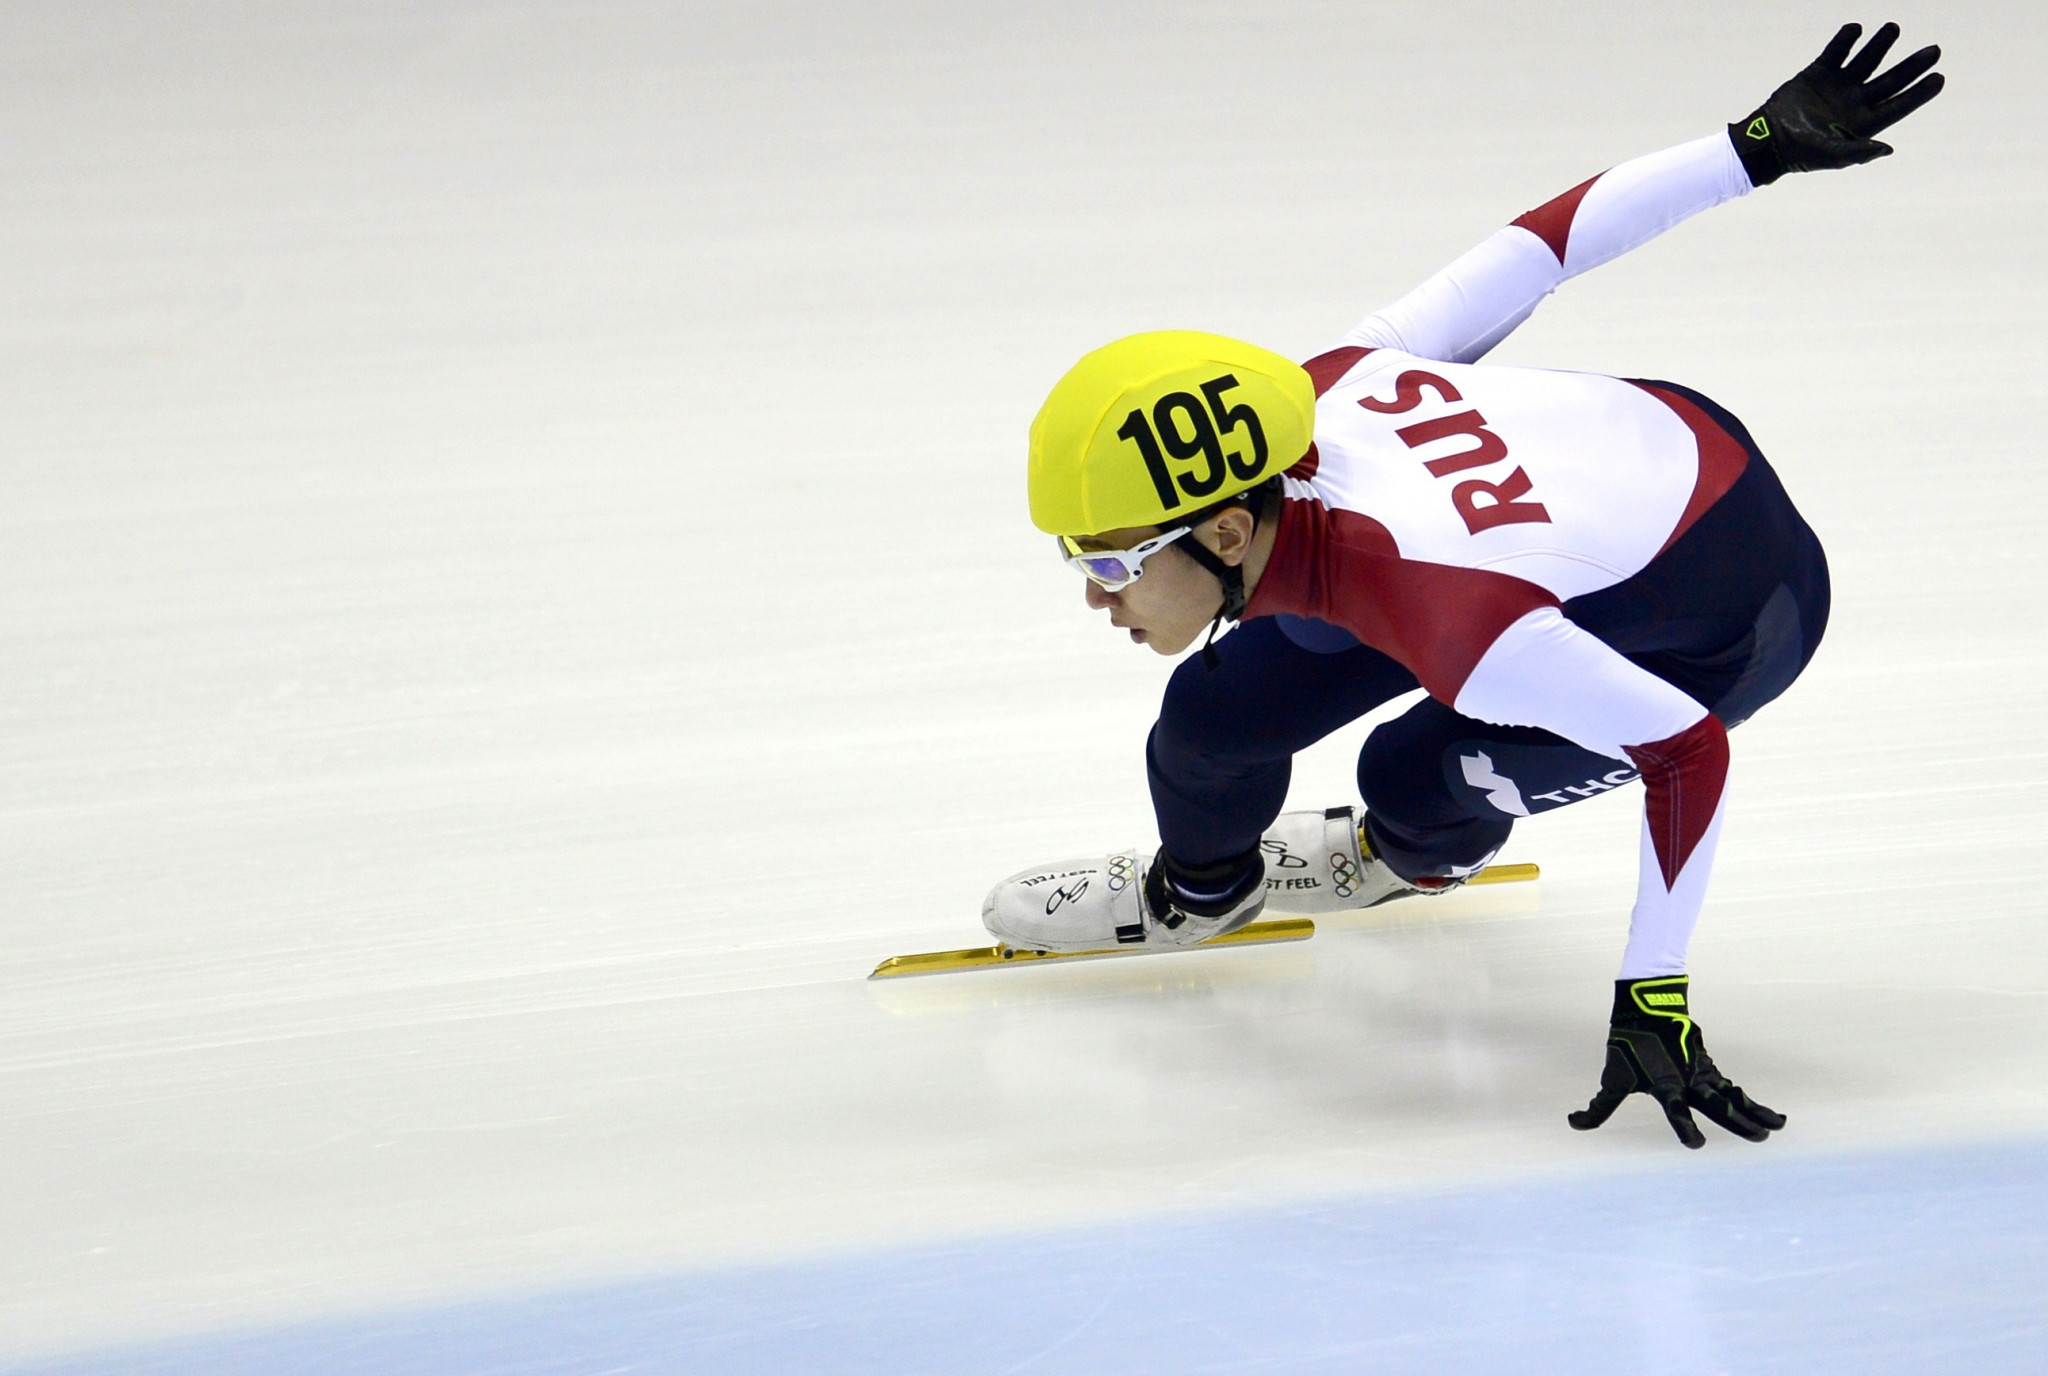 Viktor Ahn has reportedly been ruled out of Pyeongchang 2018 ©Getty Images